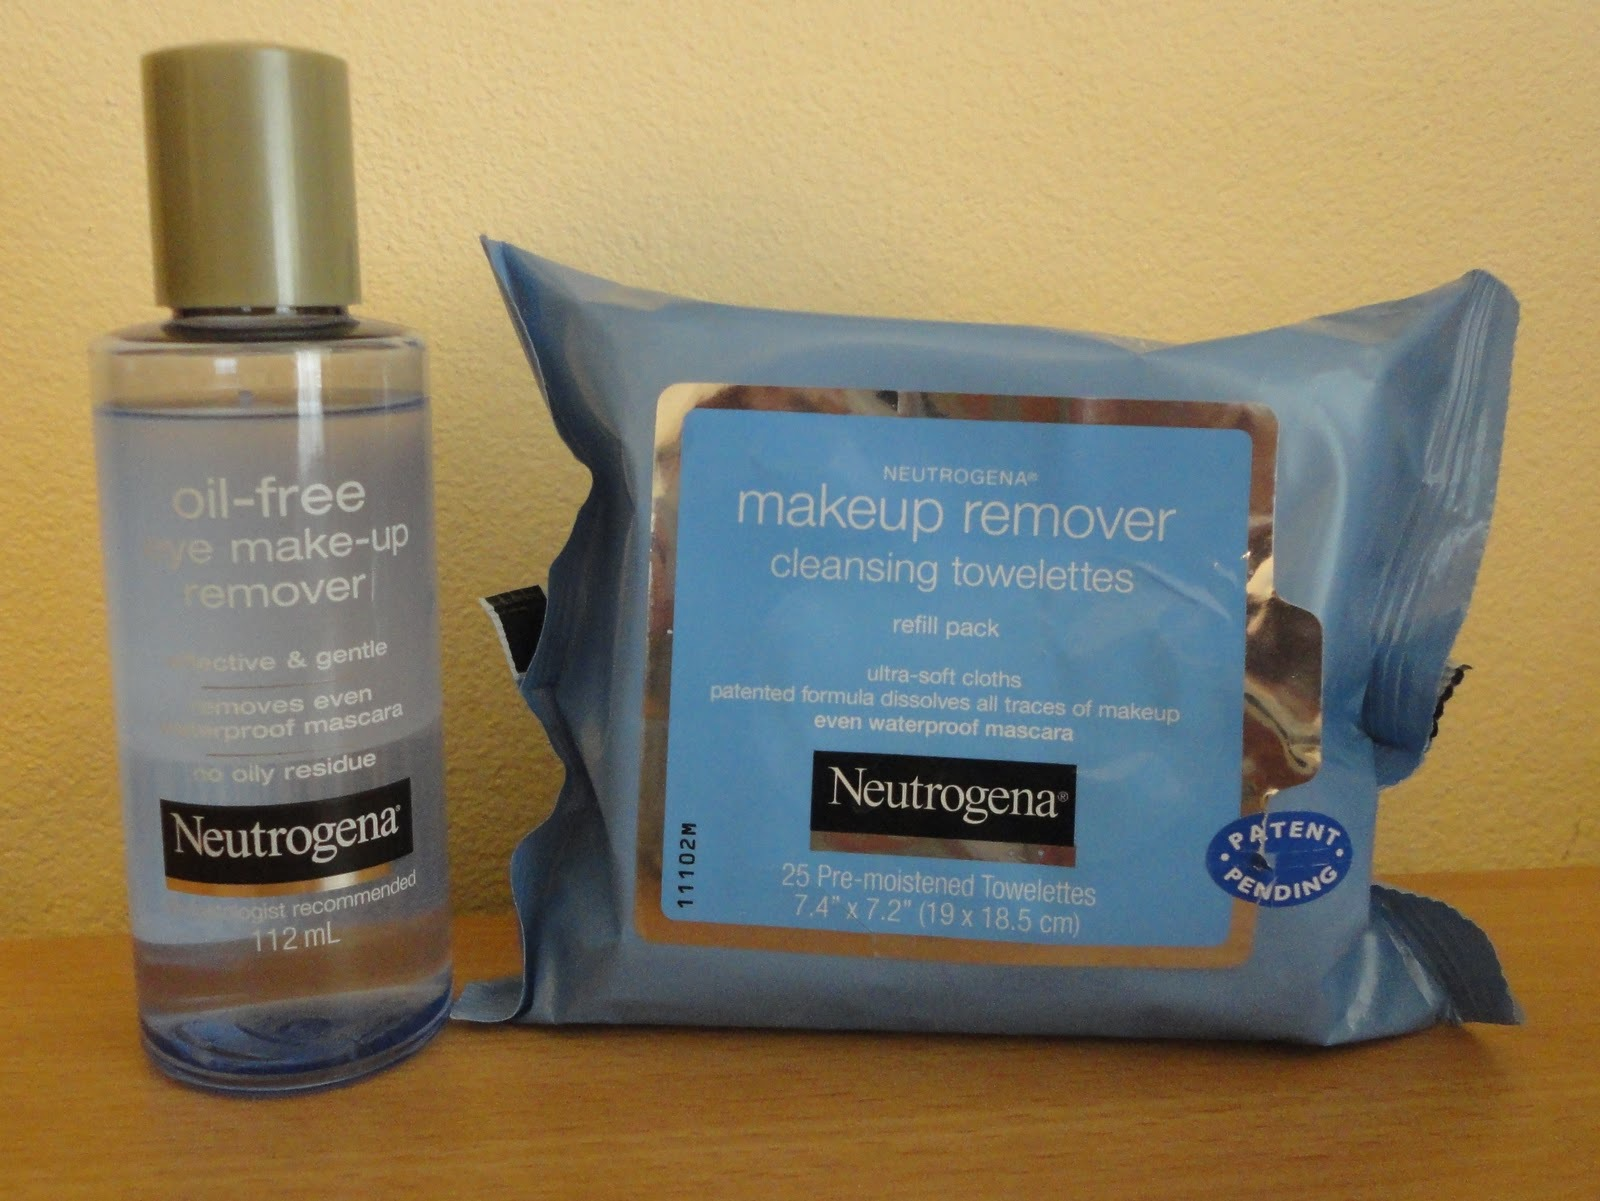 Neutrogena Oil-Free Eye Makeup Remover Reviews In Makeup Removers - ChickAdvisor